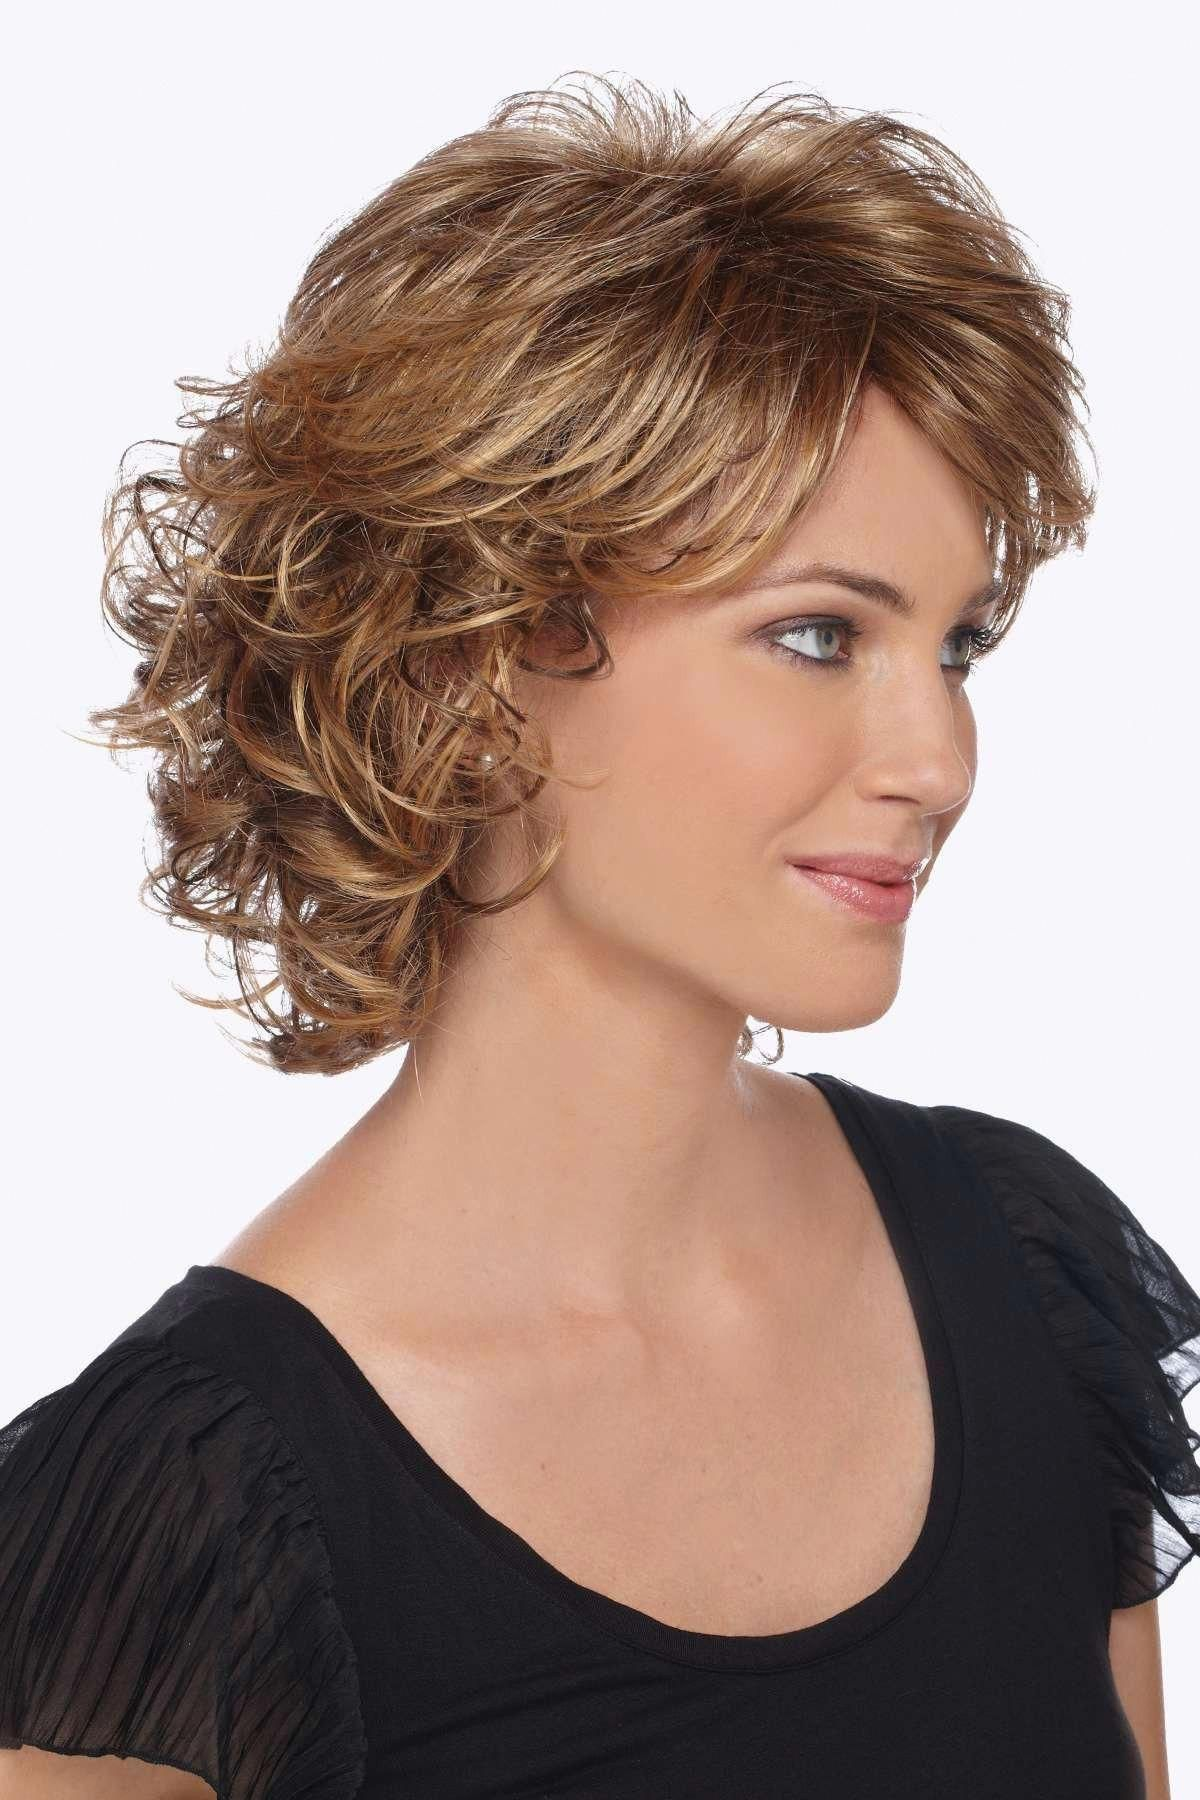 47+ Curly wig styles short ideas in 2021